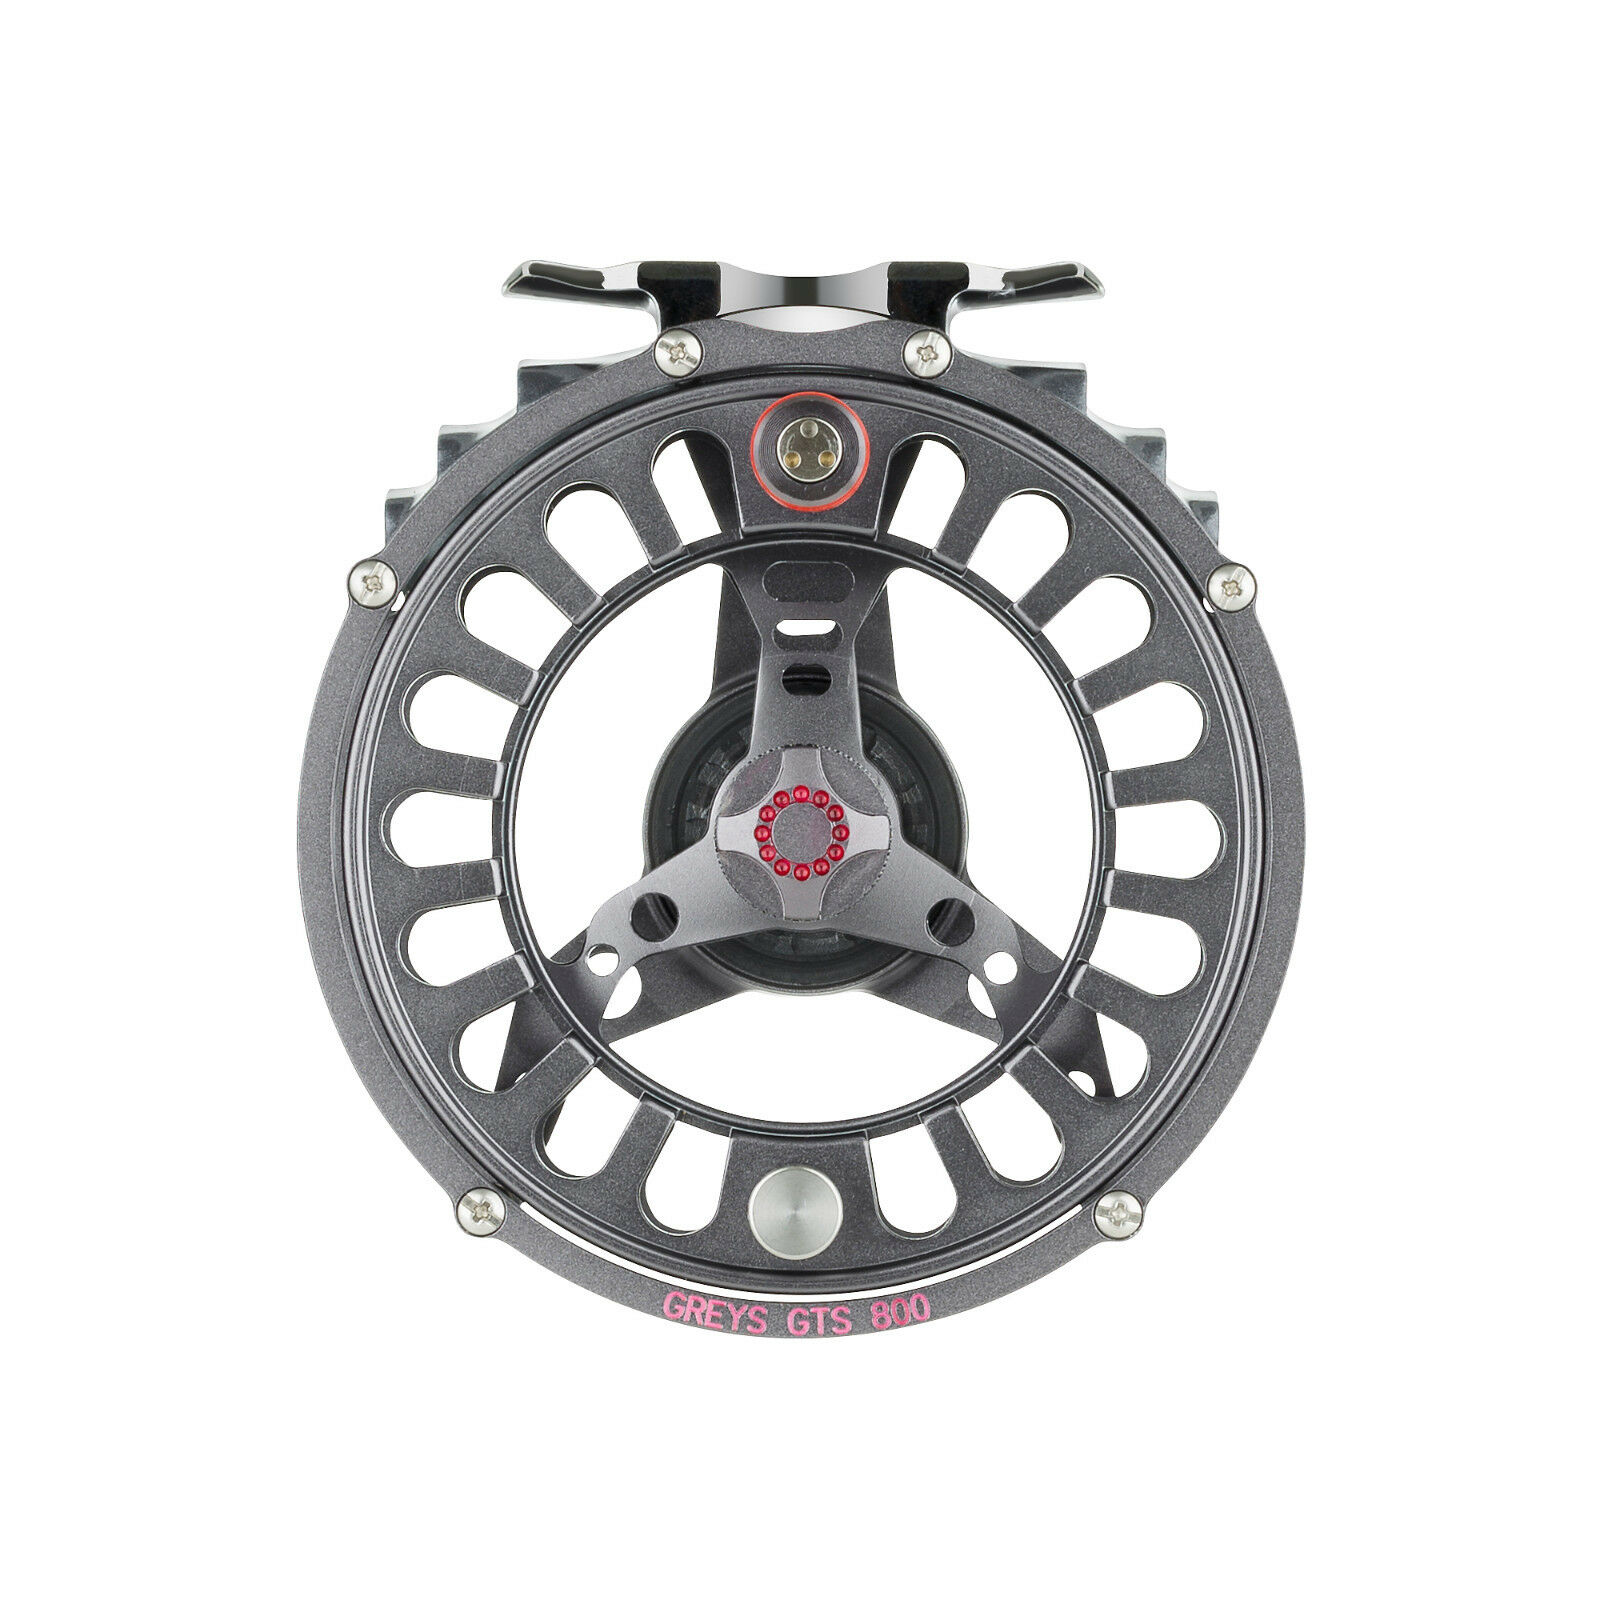 Graus Fly NEW GTS800 Fly Graus Fishing Reel or Spare Spools All Größes 5/6 7/8 9/10/11 9c9e23